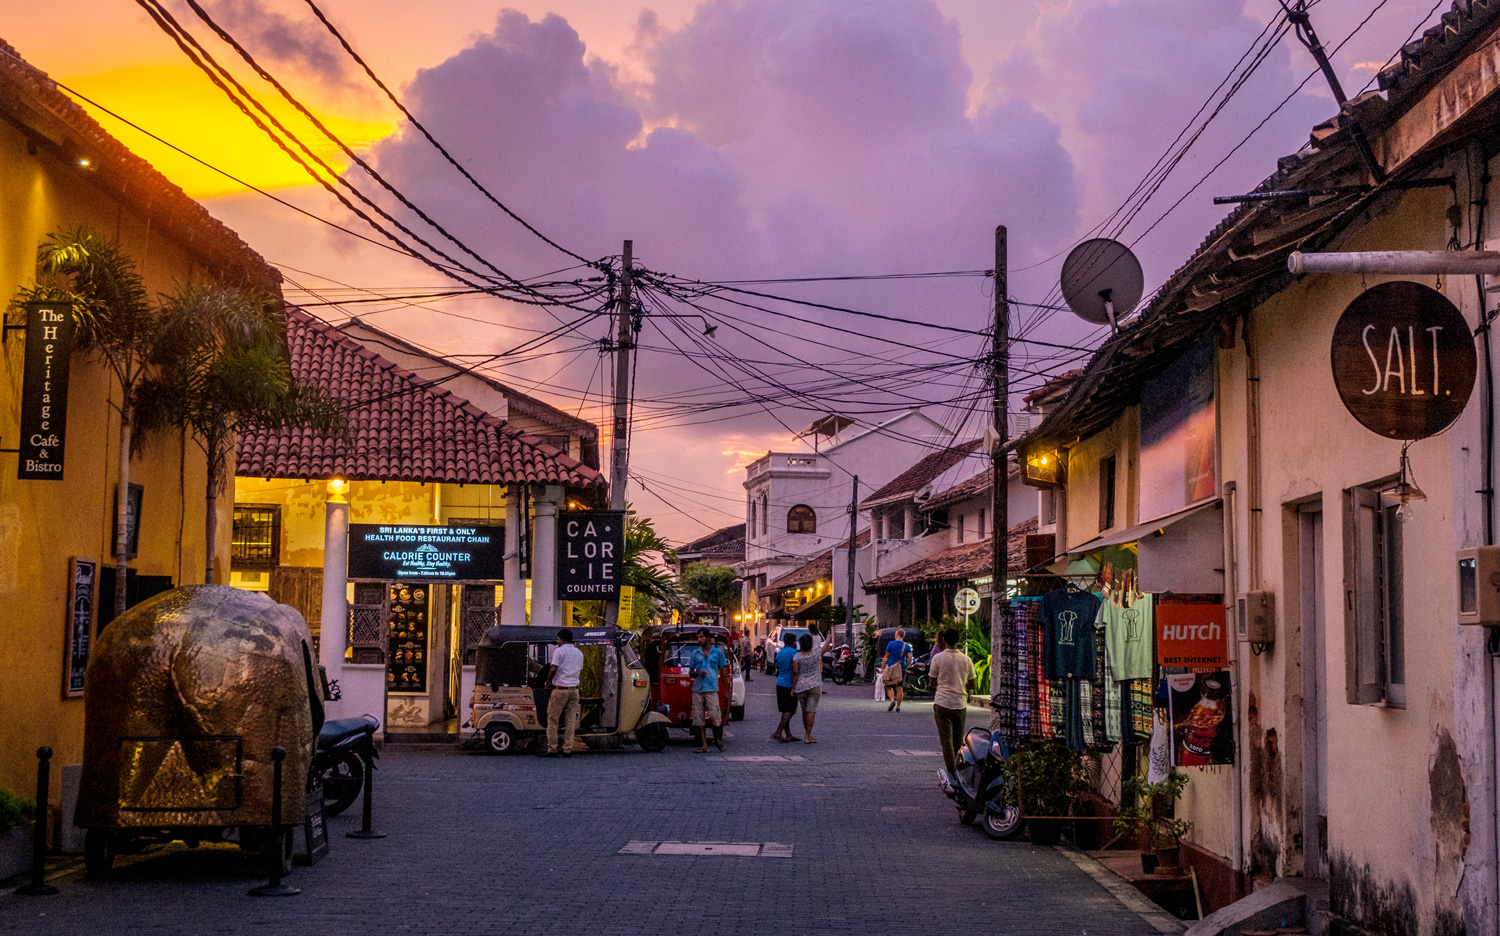 Evening shopping in the Galle Dutch Fort. Image:   Chathura Indika